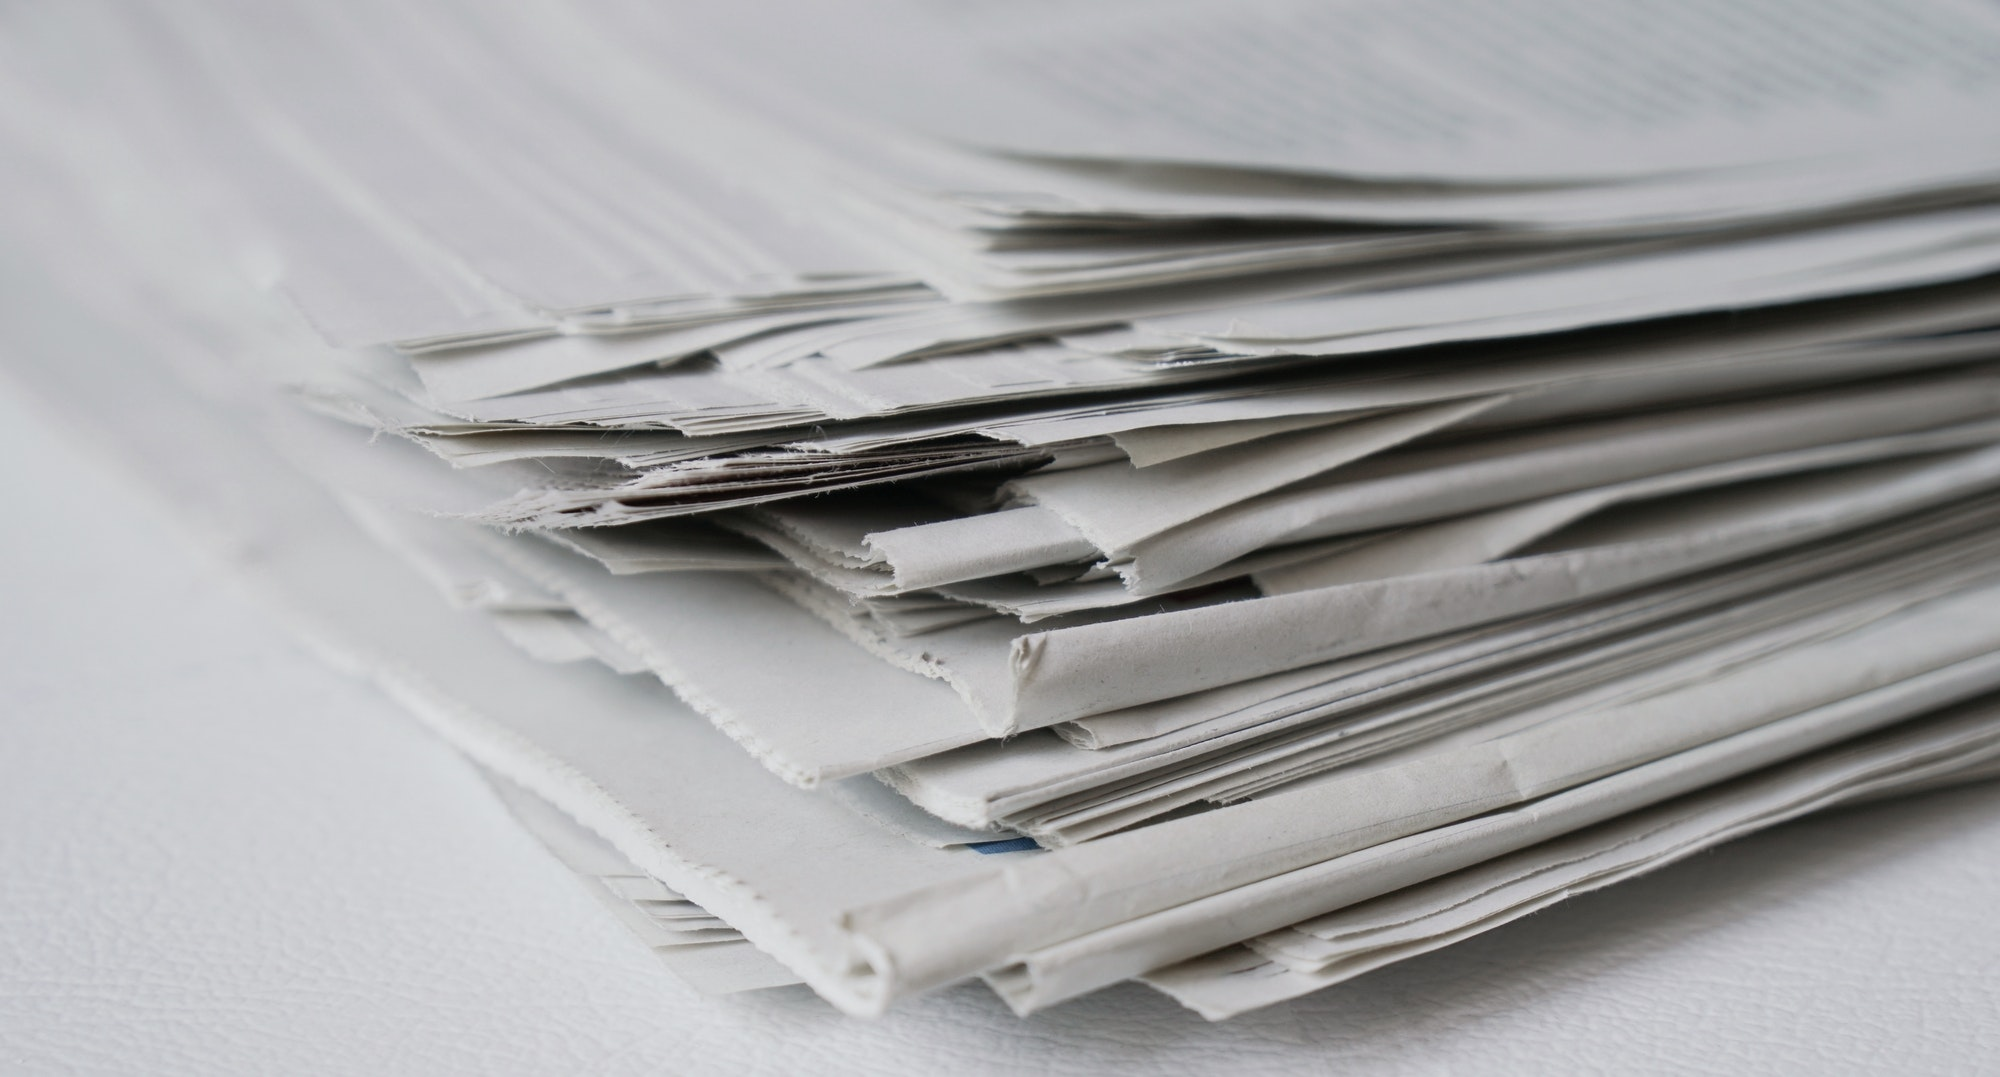 close-up of a pile of newspaper as a news and media concept